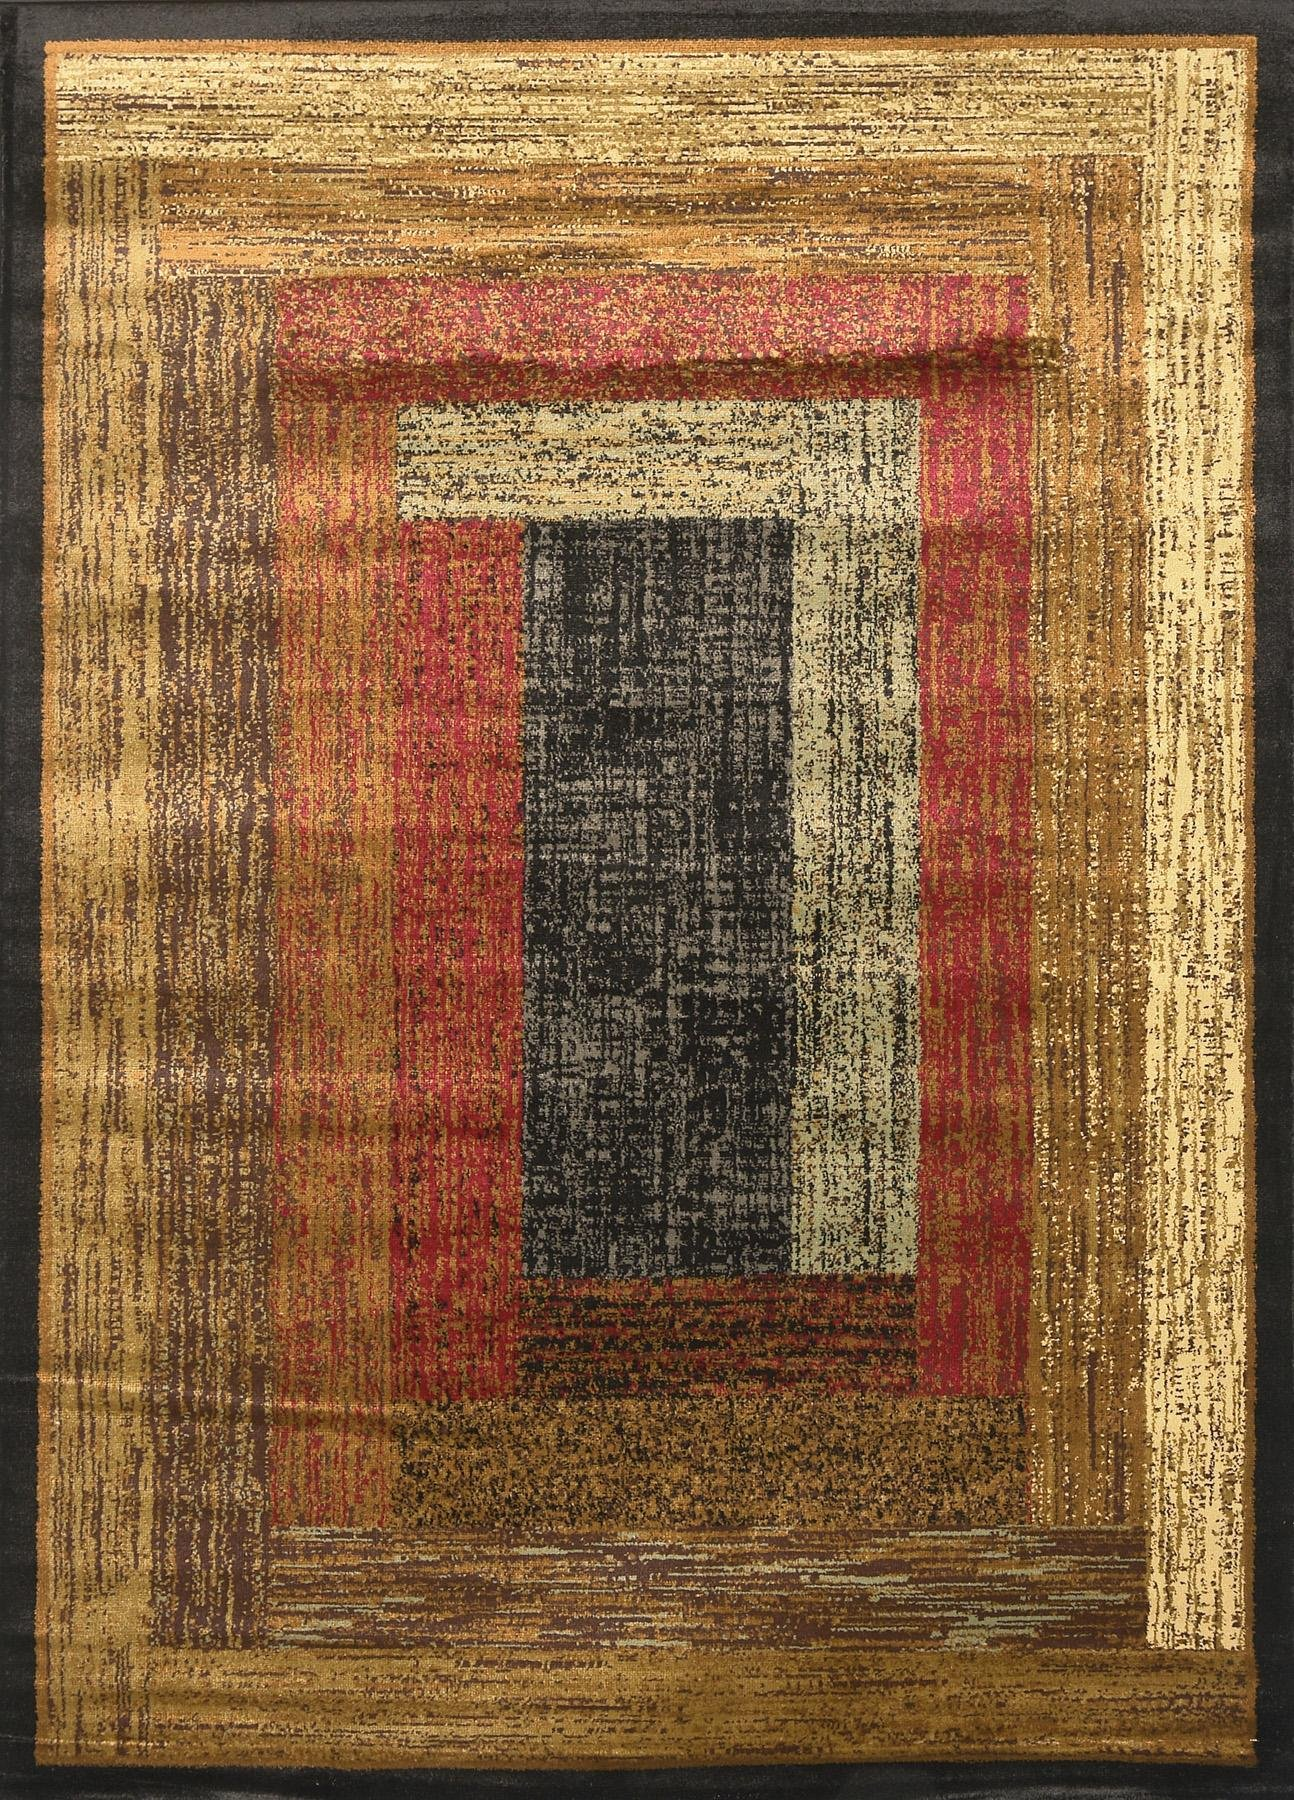 Home Dynamix Royalty – Quality Geometric Contemporary Modern Area Rug 7'8 x 10'4, Multi-colored